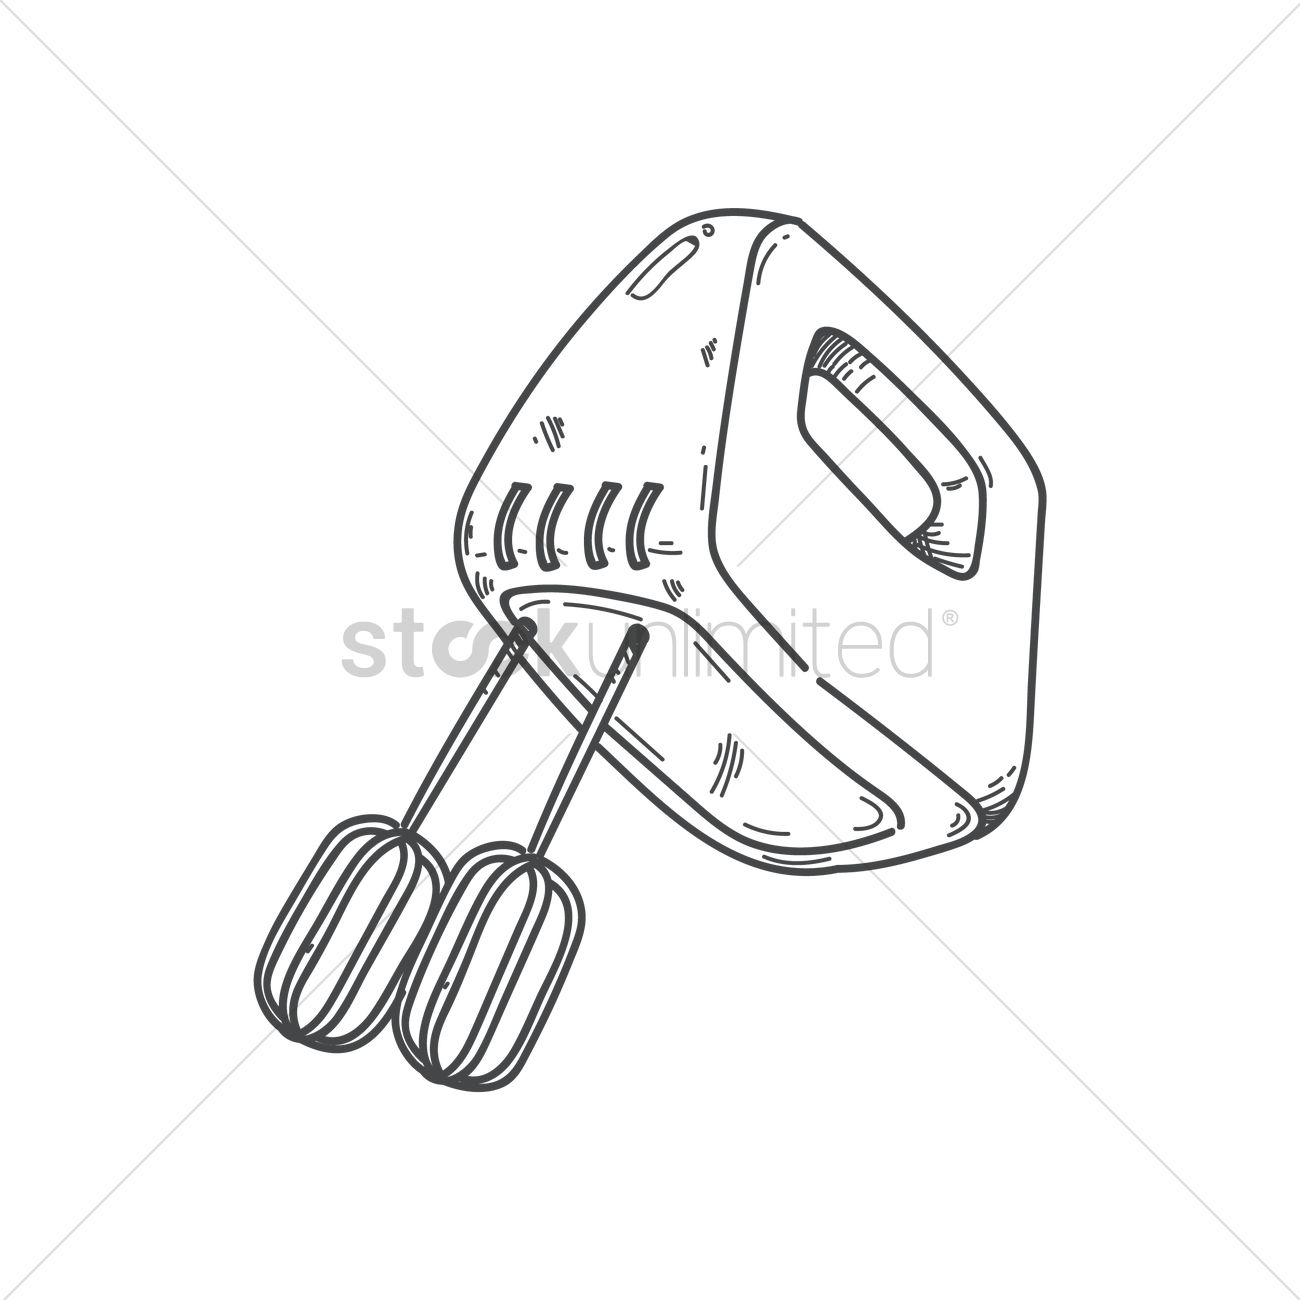 Electric whisk Vector Image - 1819337 | StockUnlimited